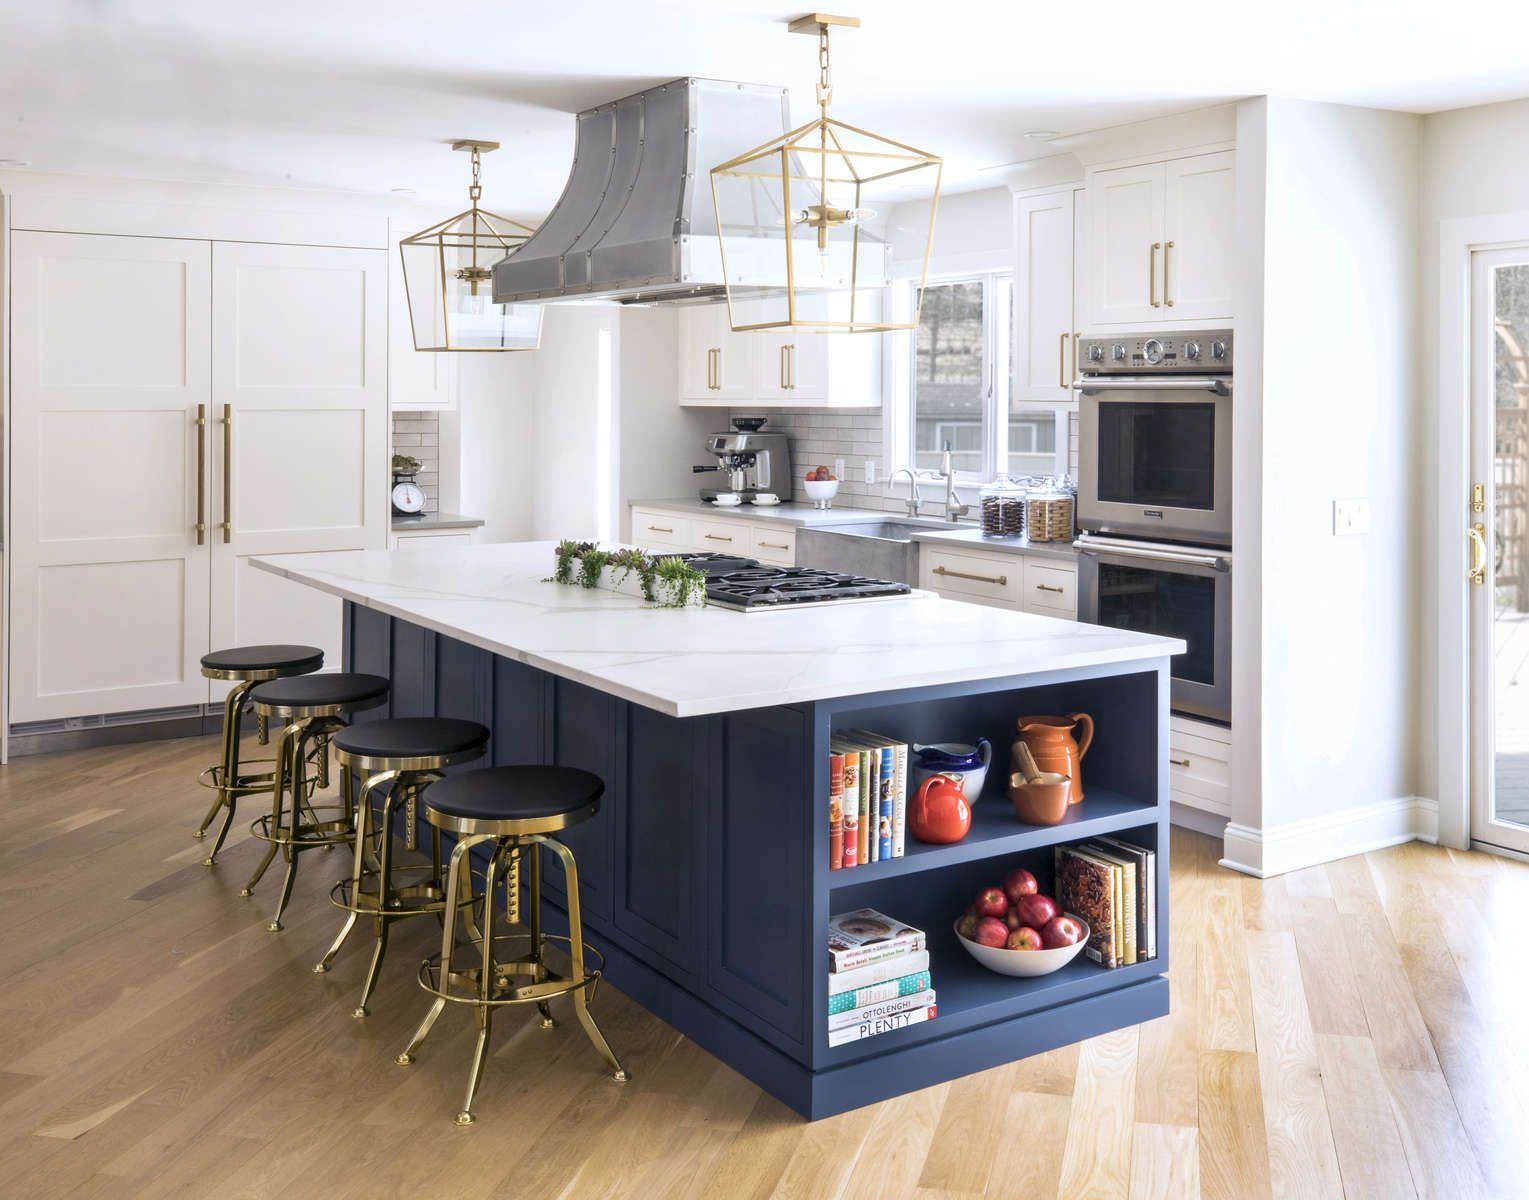 White Statuary Stone On The Island And A Solid Grey Quartz On The Perimeter Of The Kitchen Gave Them A Kitchen Design Kitchen Inspirations Blue White Kitchens